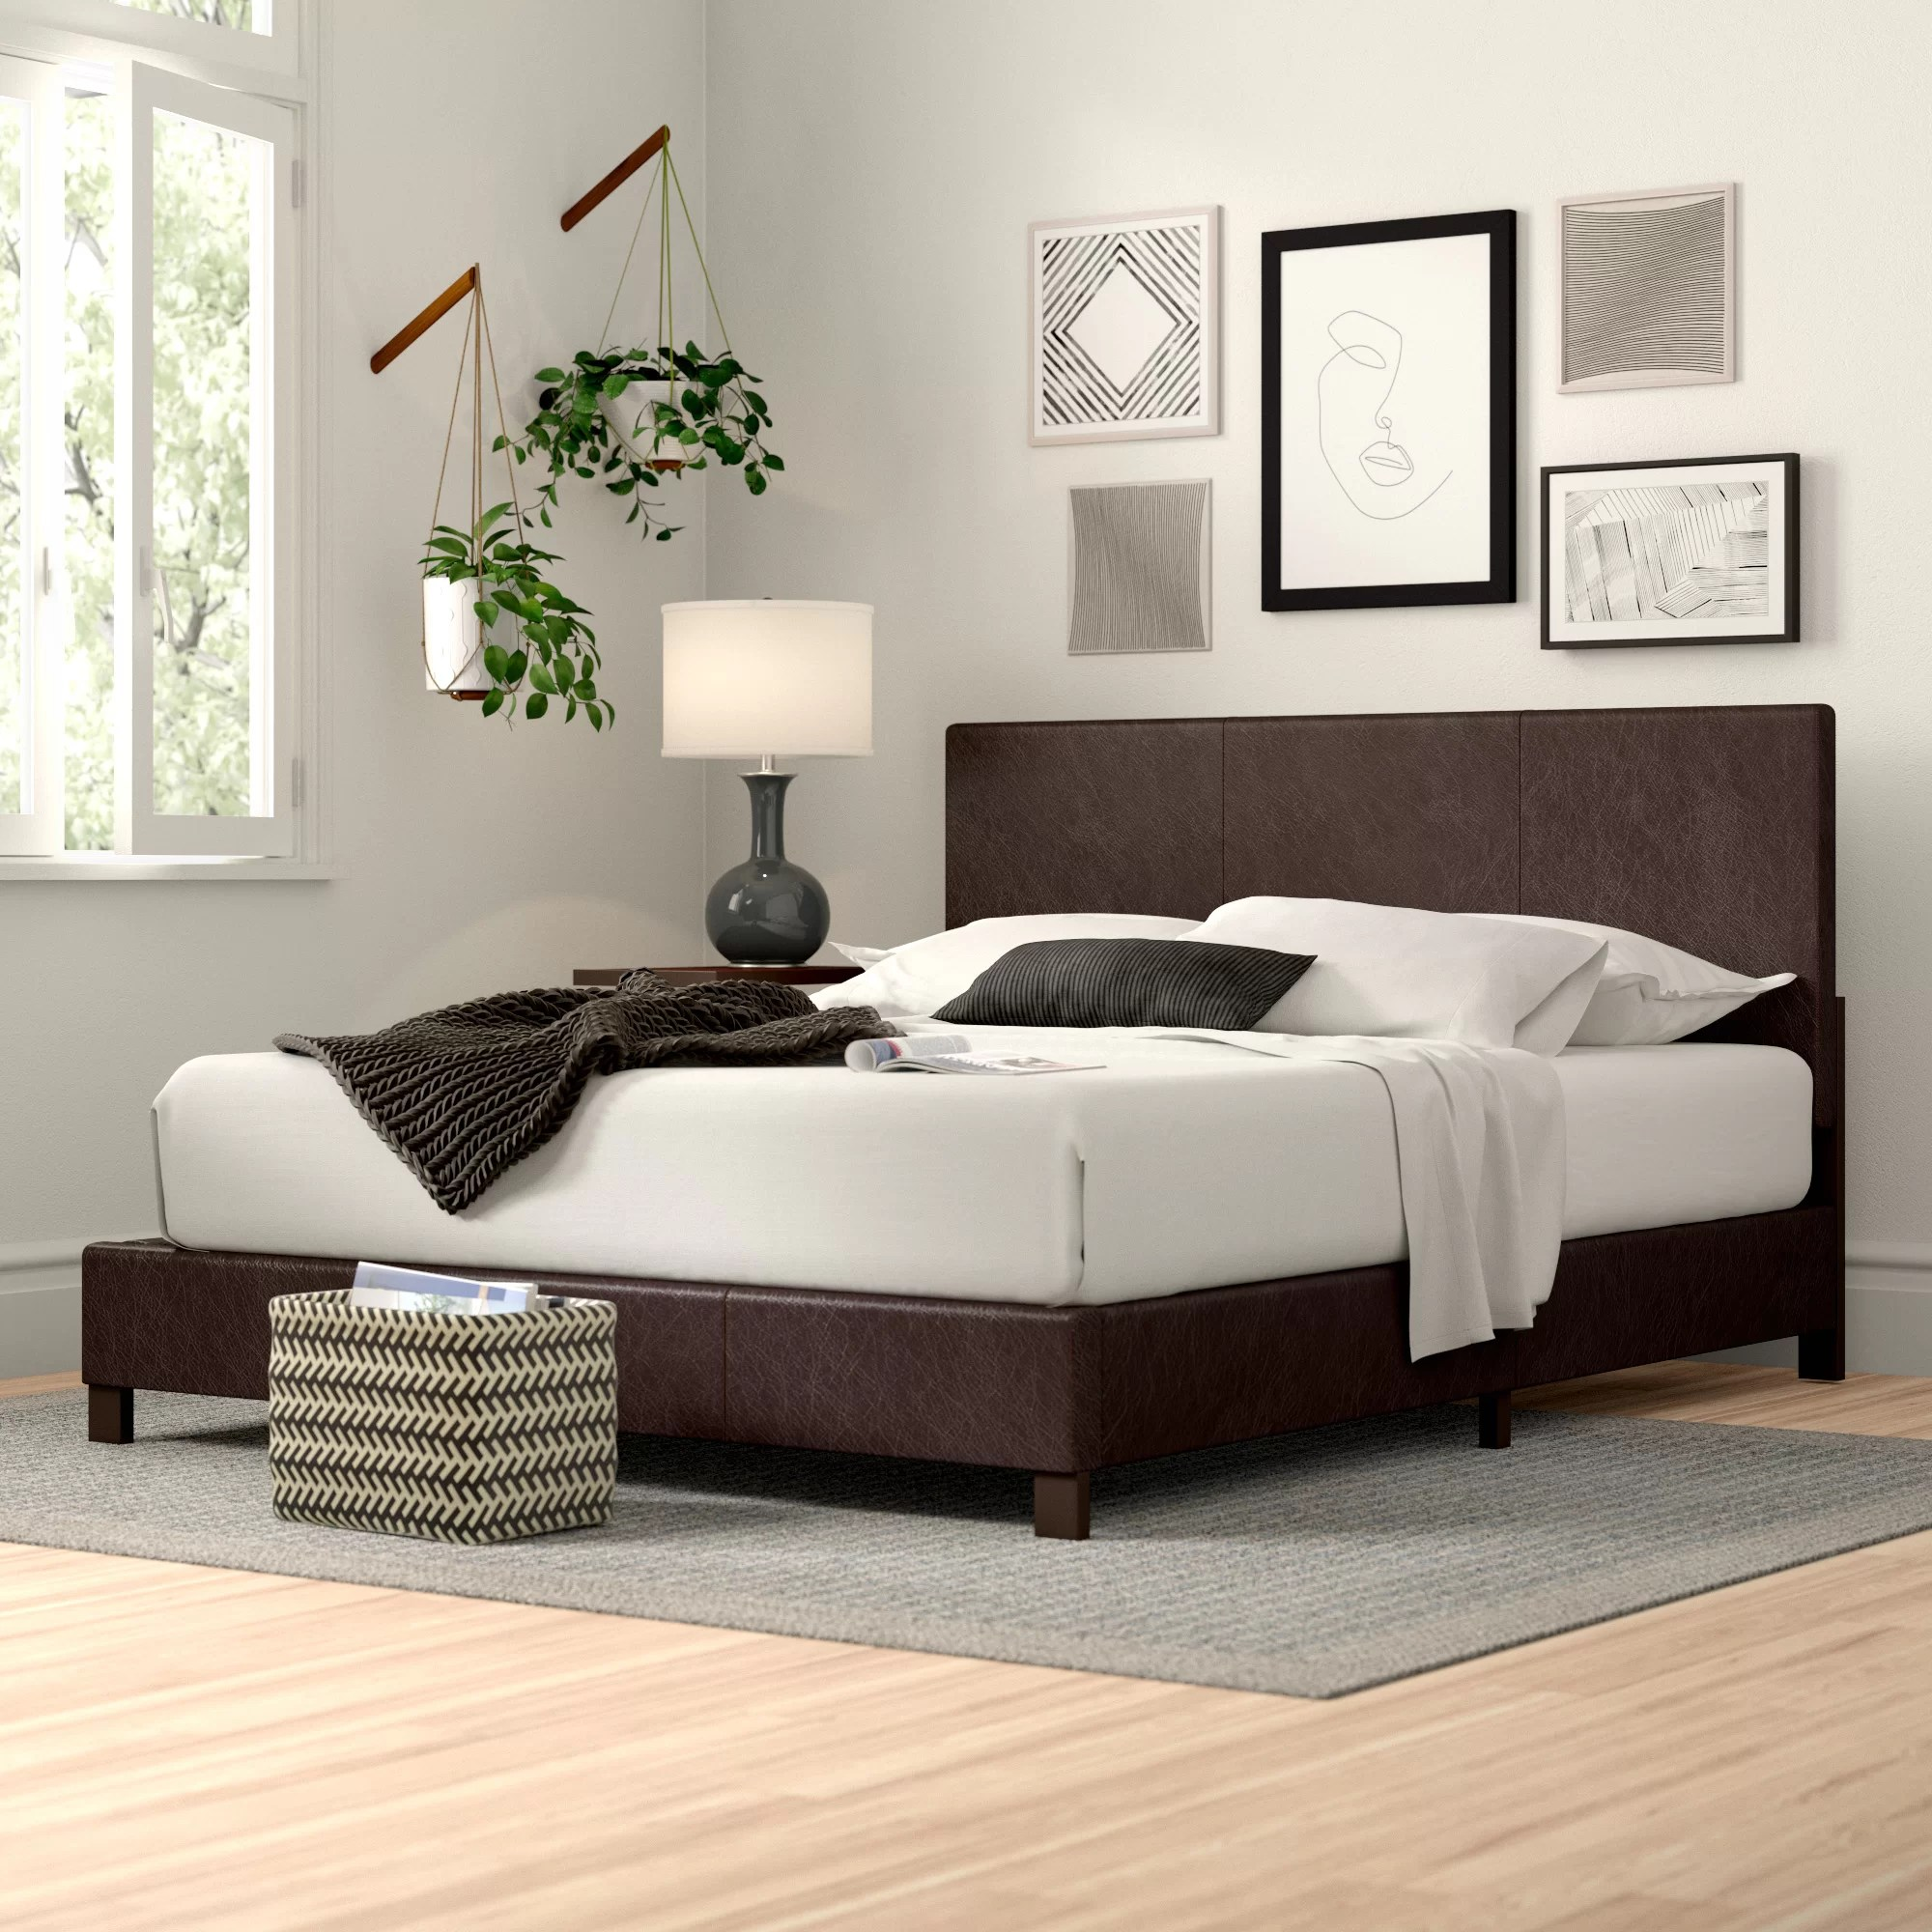 Queen Size Beds On Sale Free Shipping Over 35 Wayfair